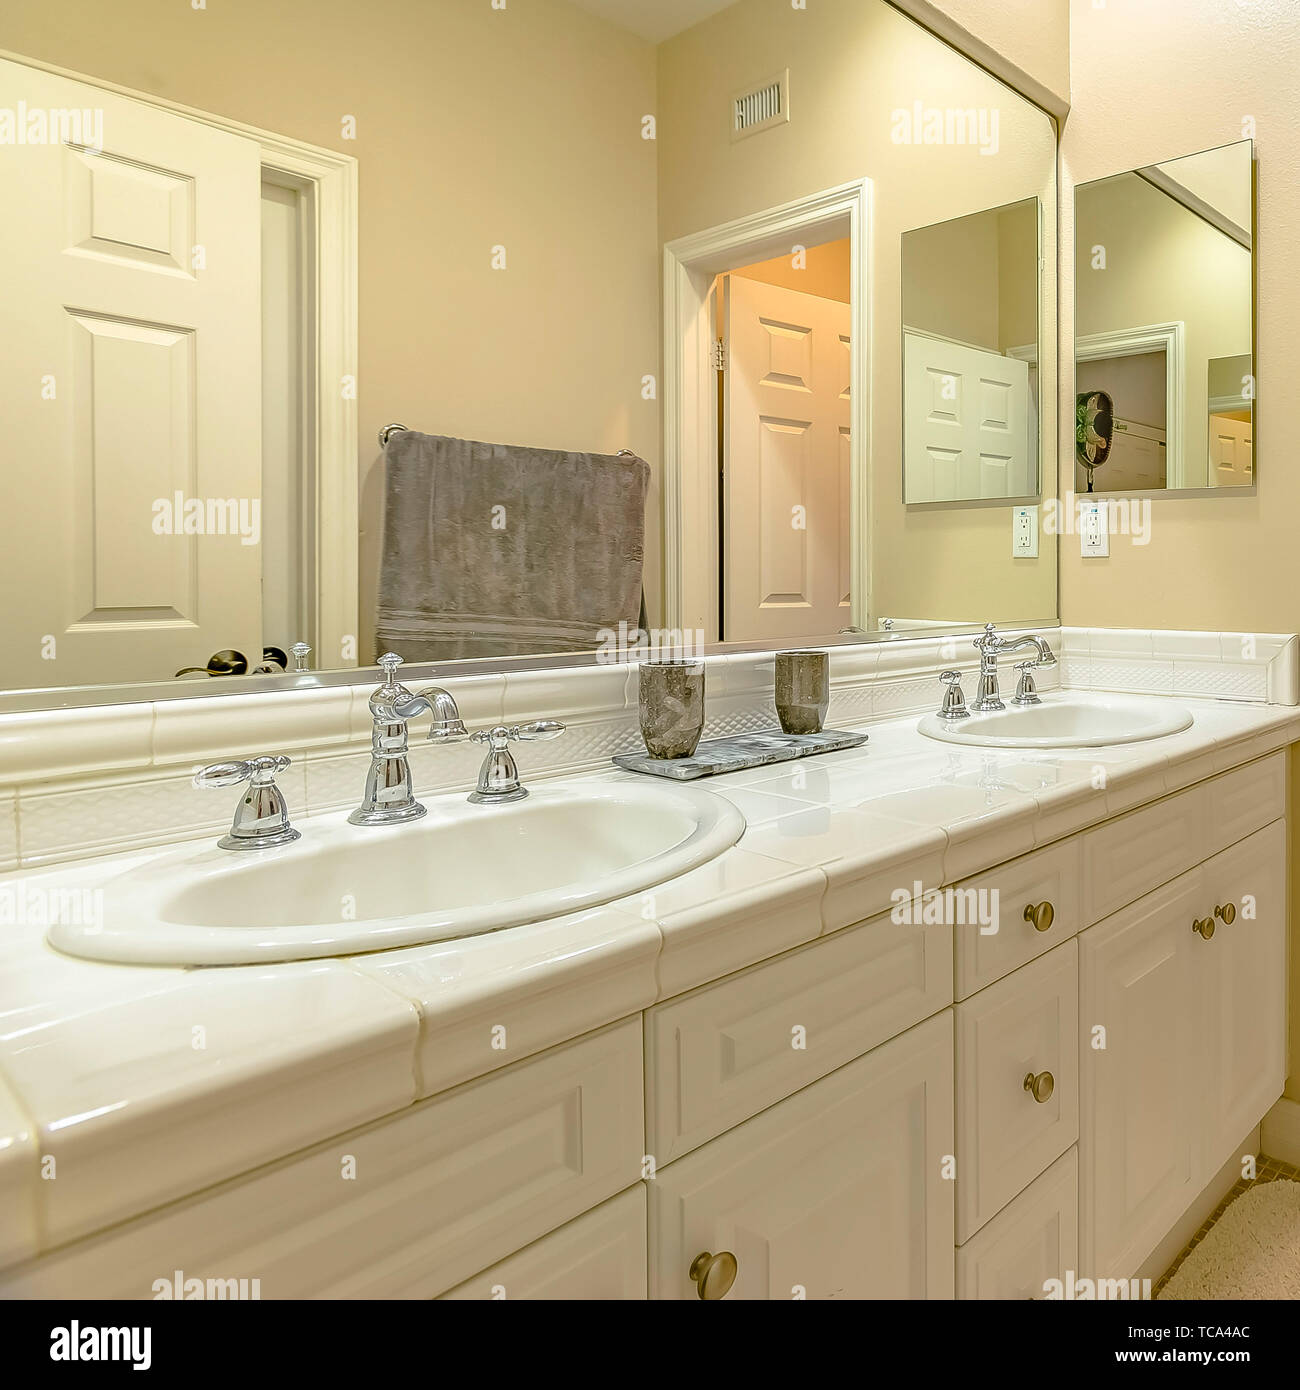 Frame Square Interior Of A Small Bathroom With A Double Sink Vanity Area And Wood Cabinets Stock Photo Alamy